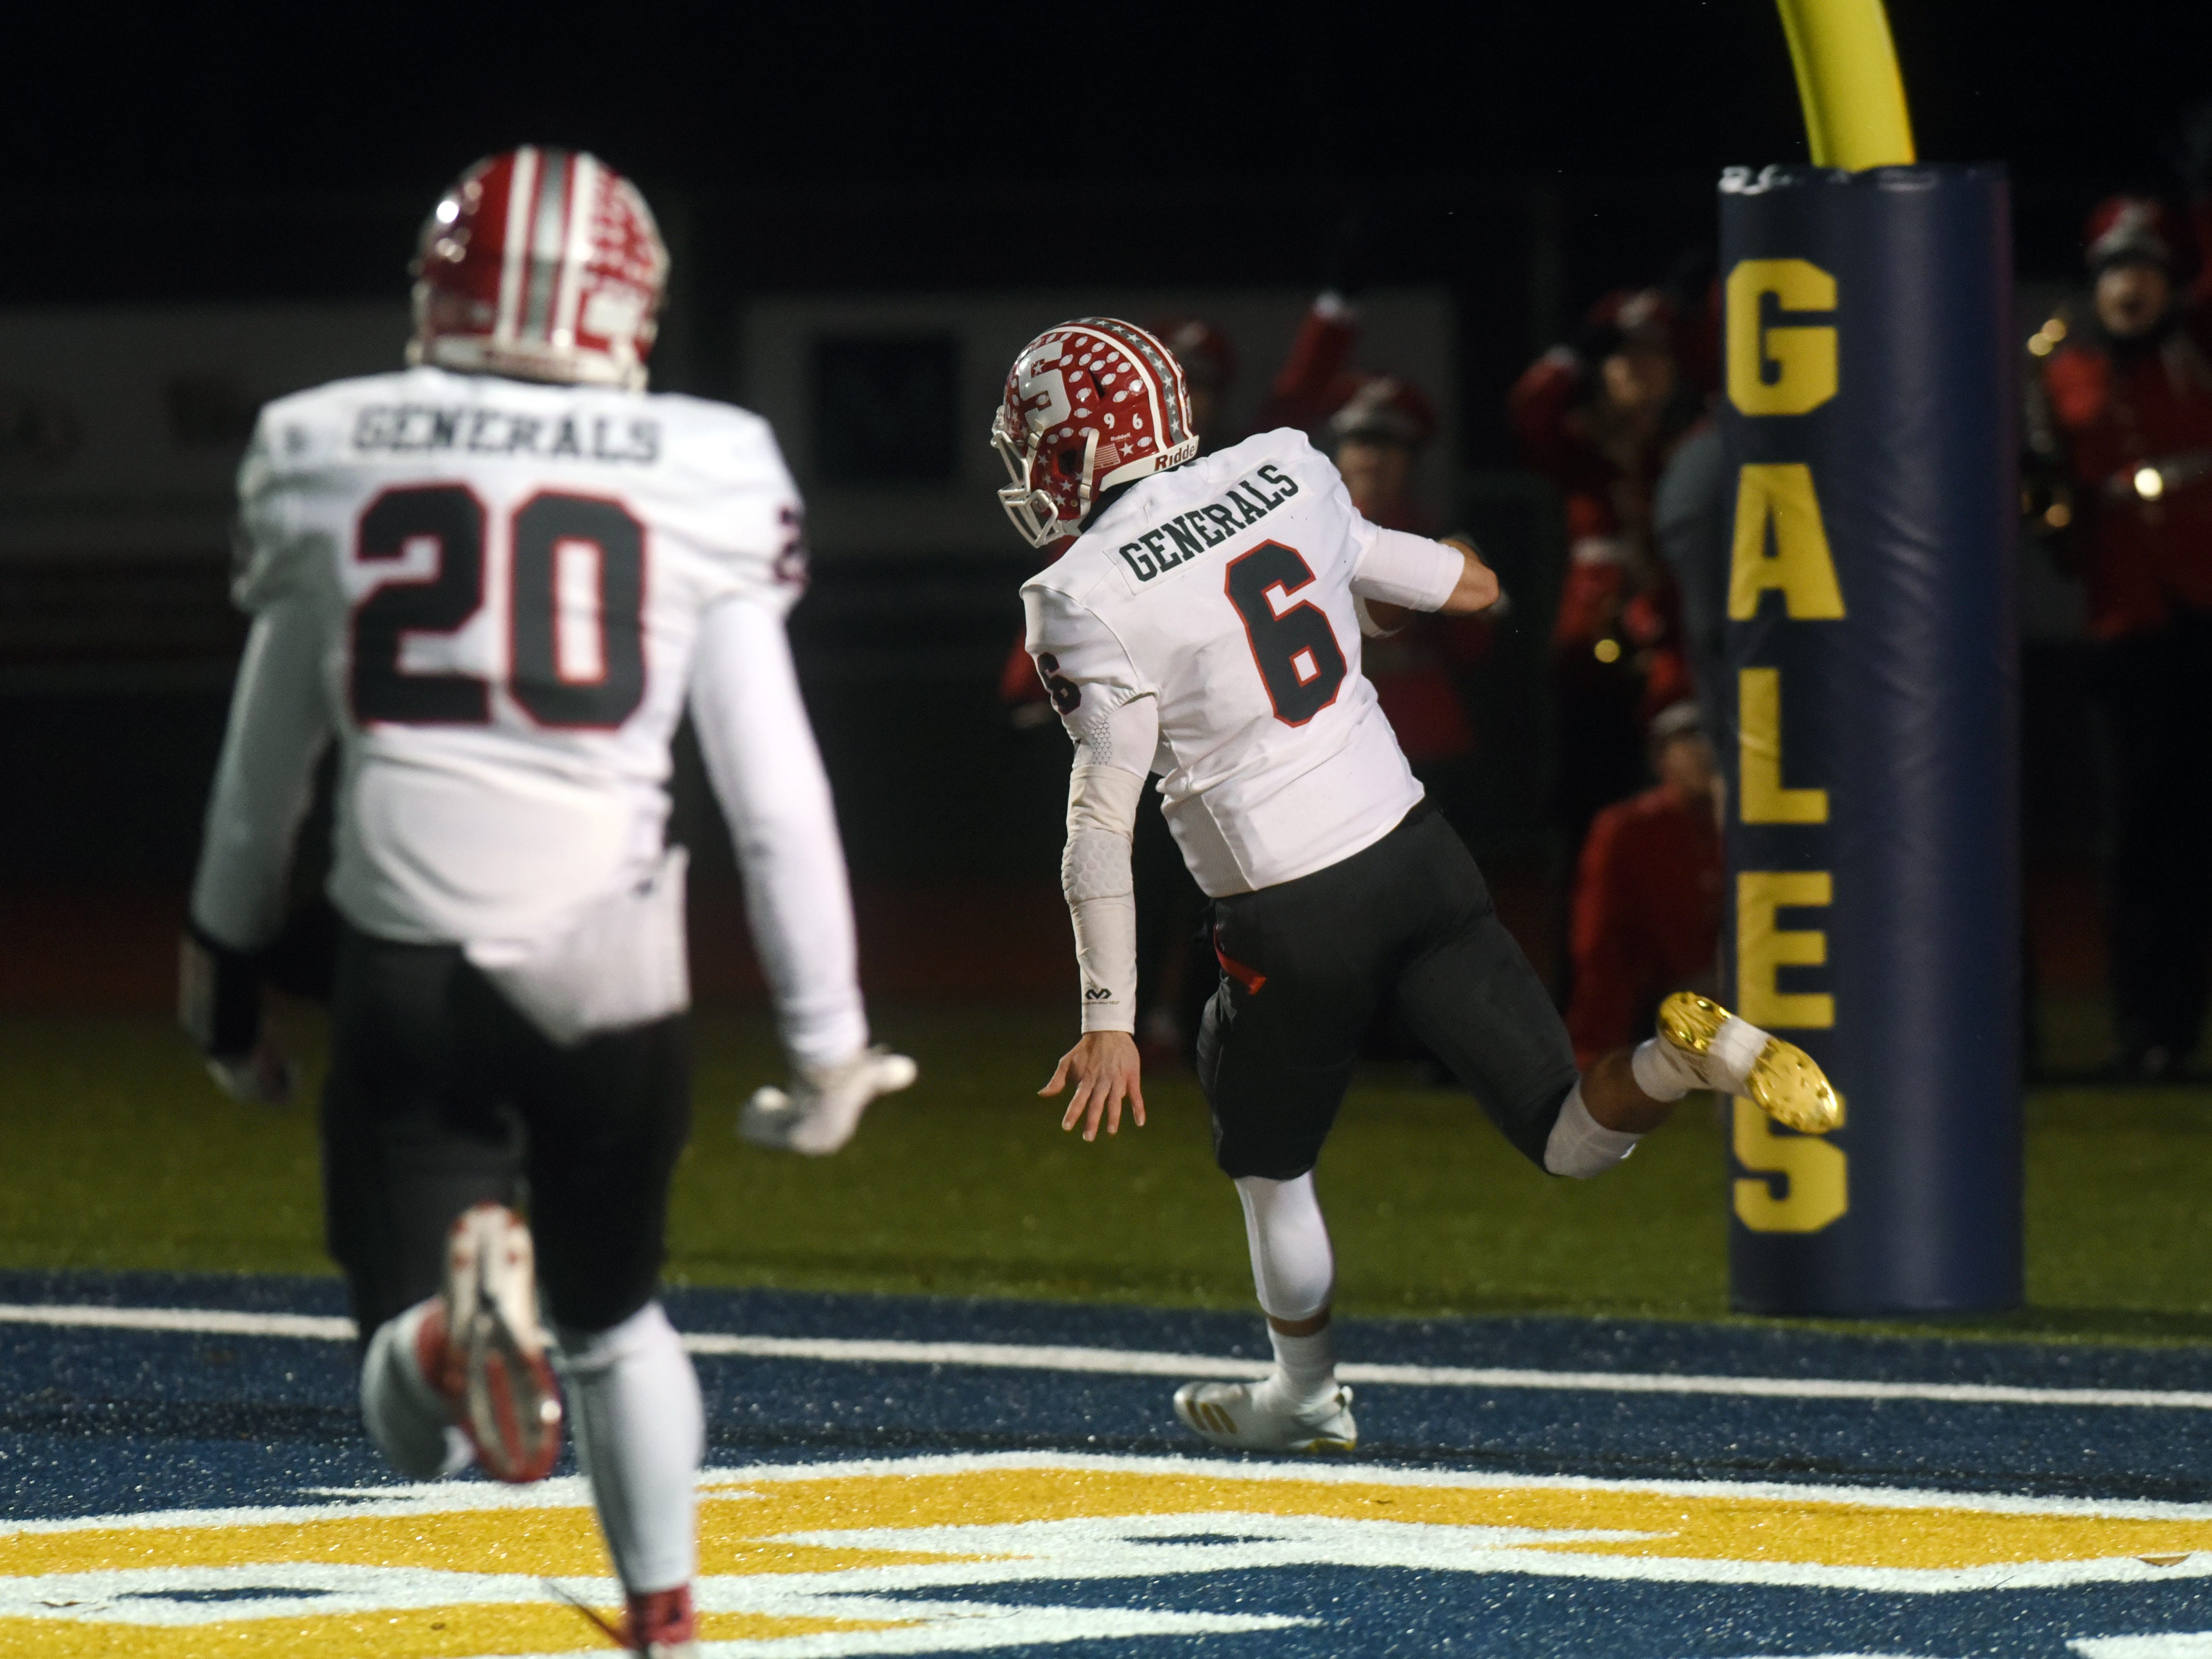 Ethan Heller celebrates in the end zone after scoring a touchdown in the first quarter of Sheridan's 20-14 loss to Columbus Eastmoor Academy in a Division III, Region 11 final on Friday night in Lancaster.